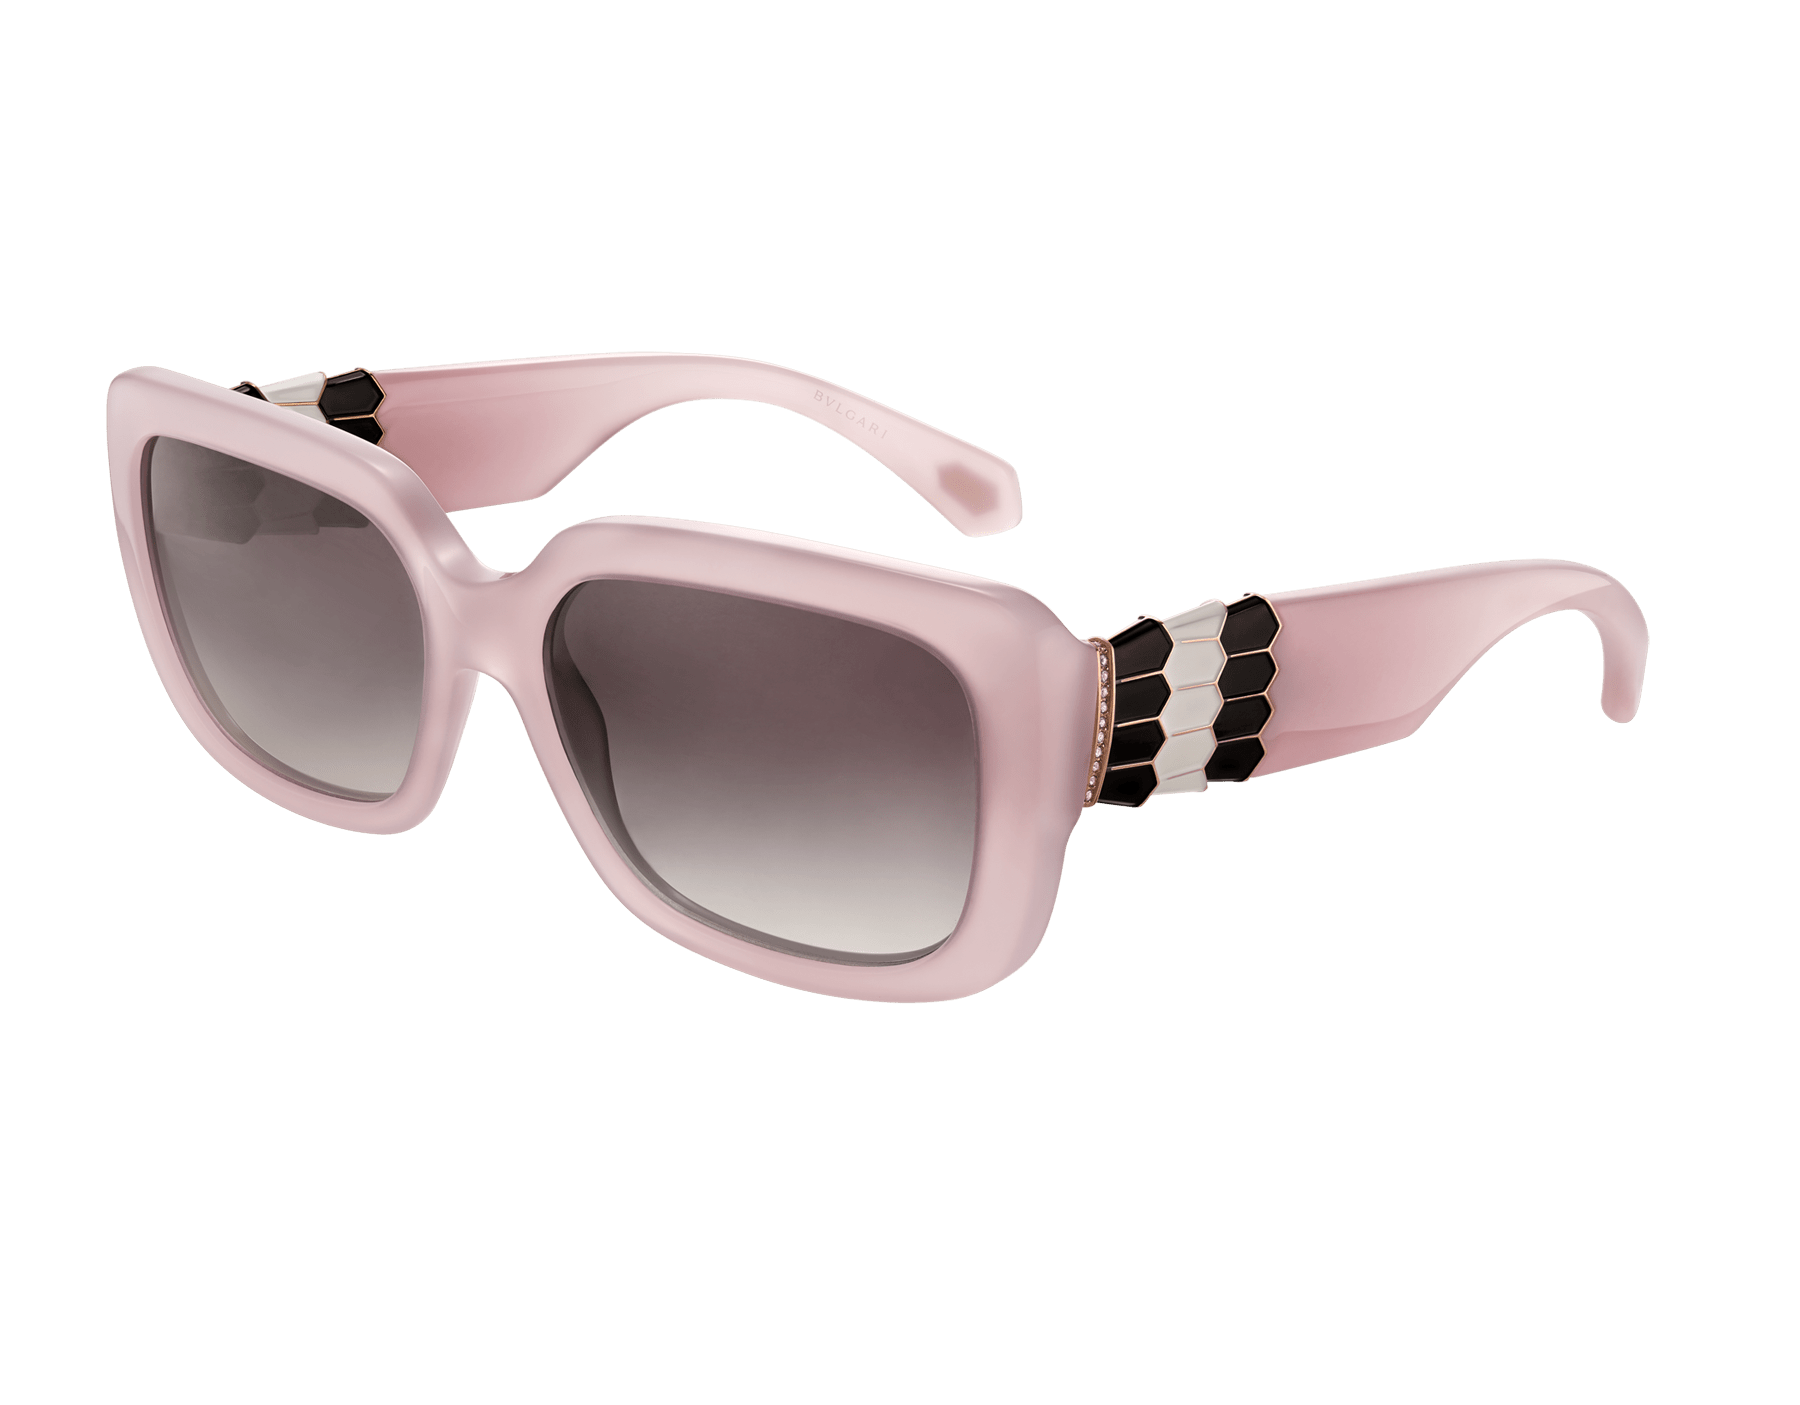 Bulgari Serpenti Back-to-scale rectangular acetate sunglasses. 903969 image 1